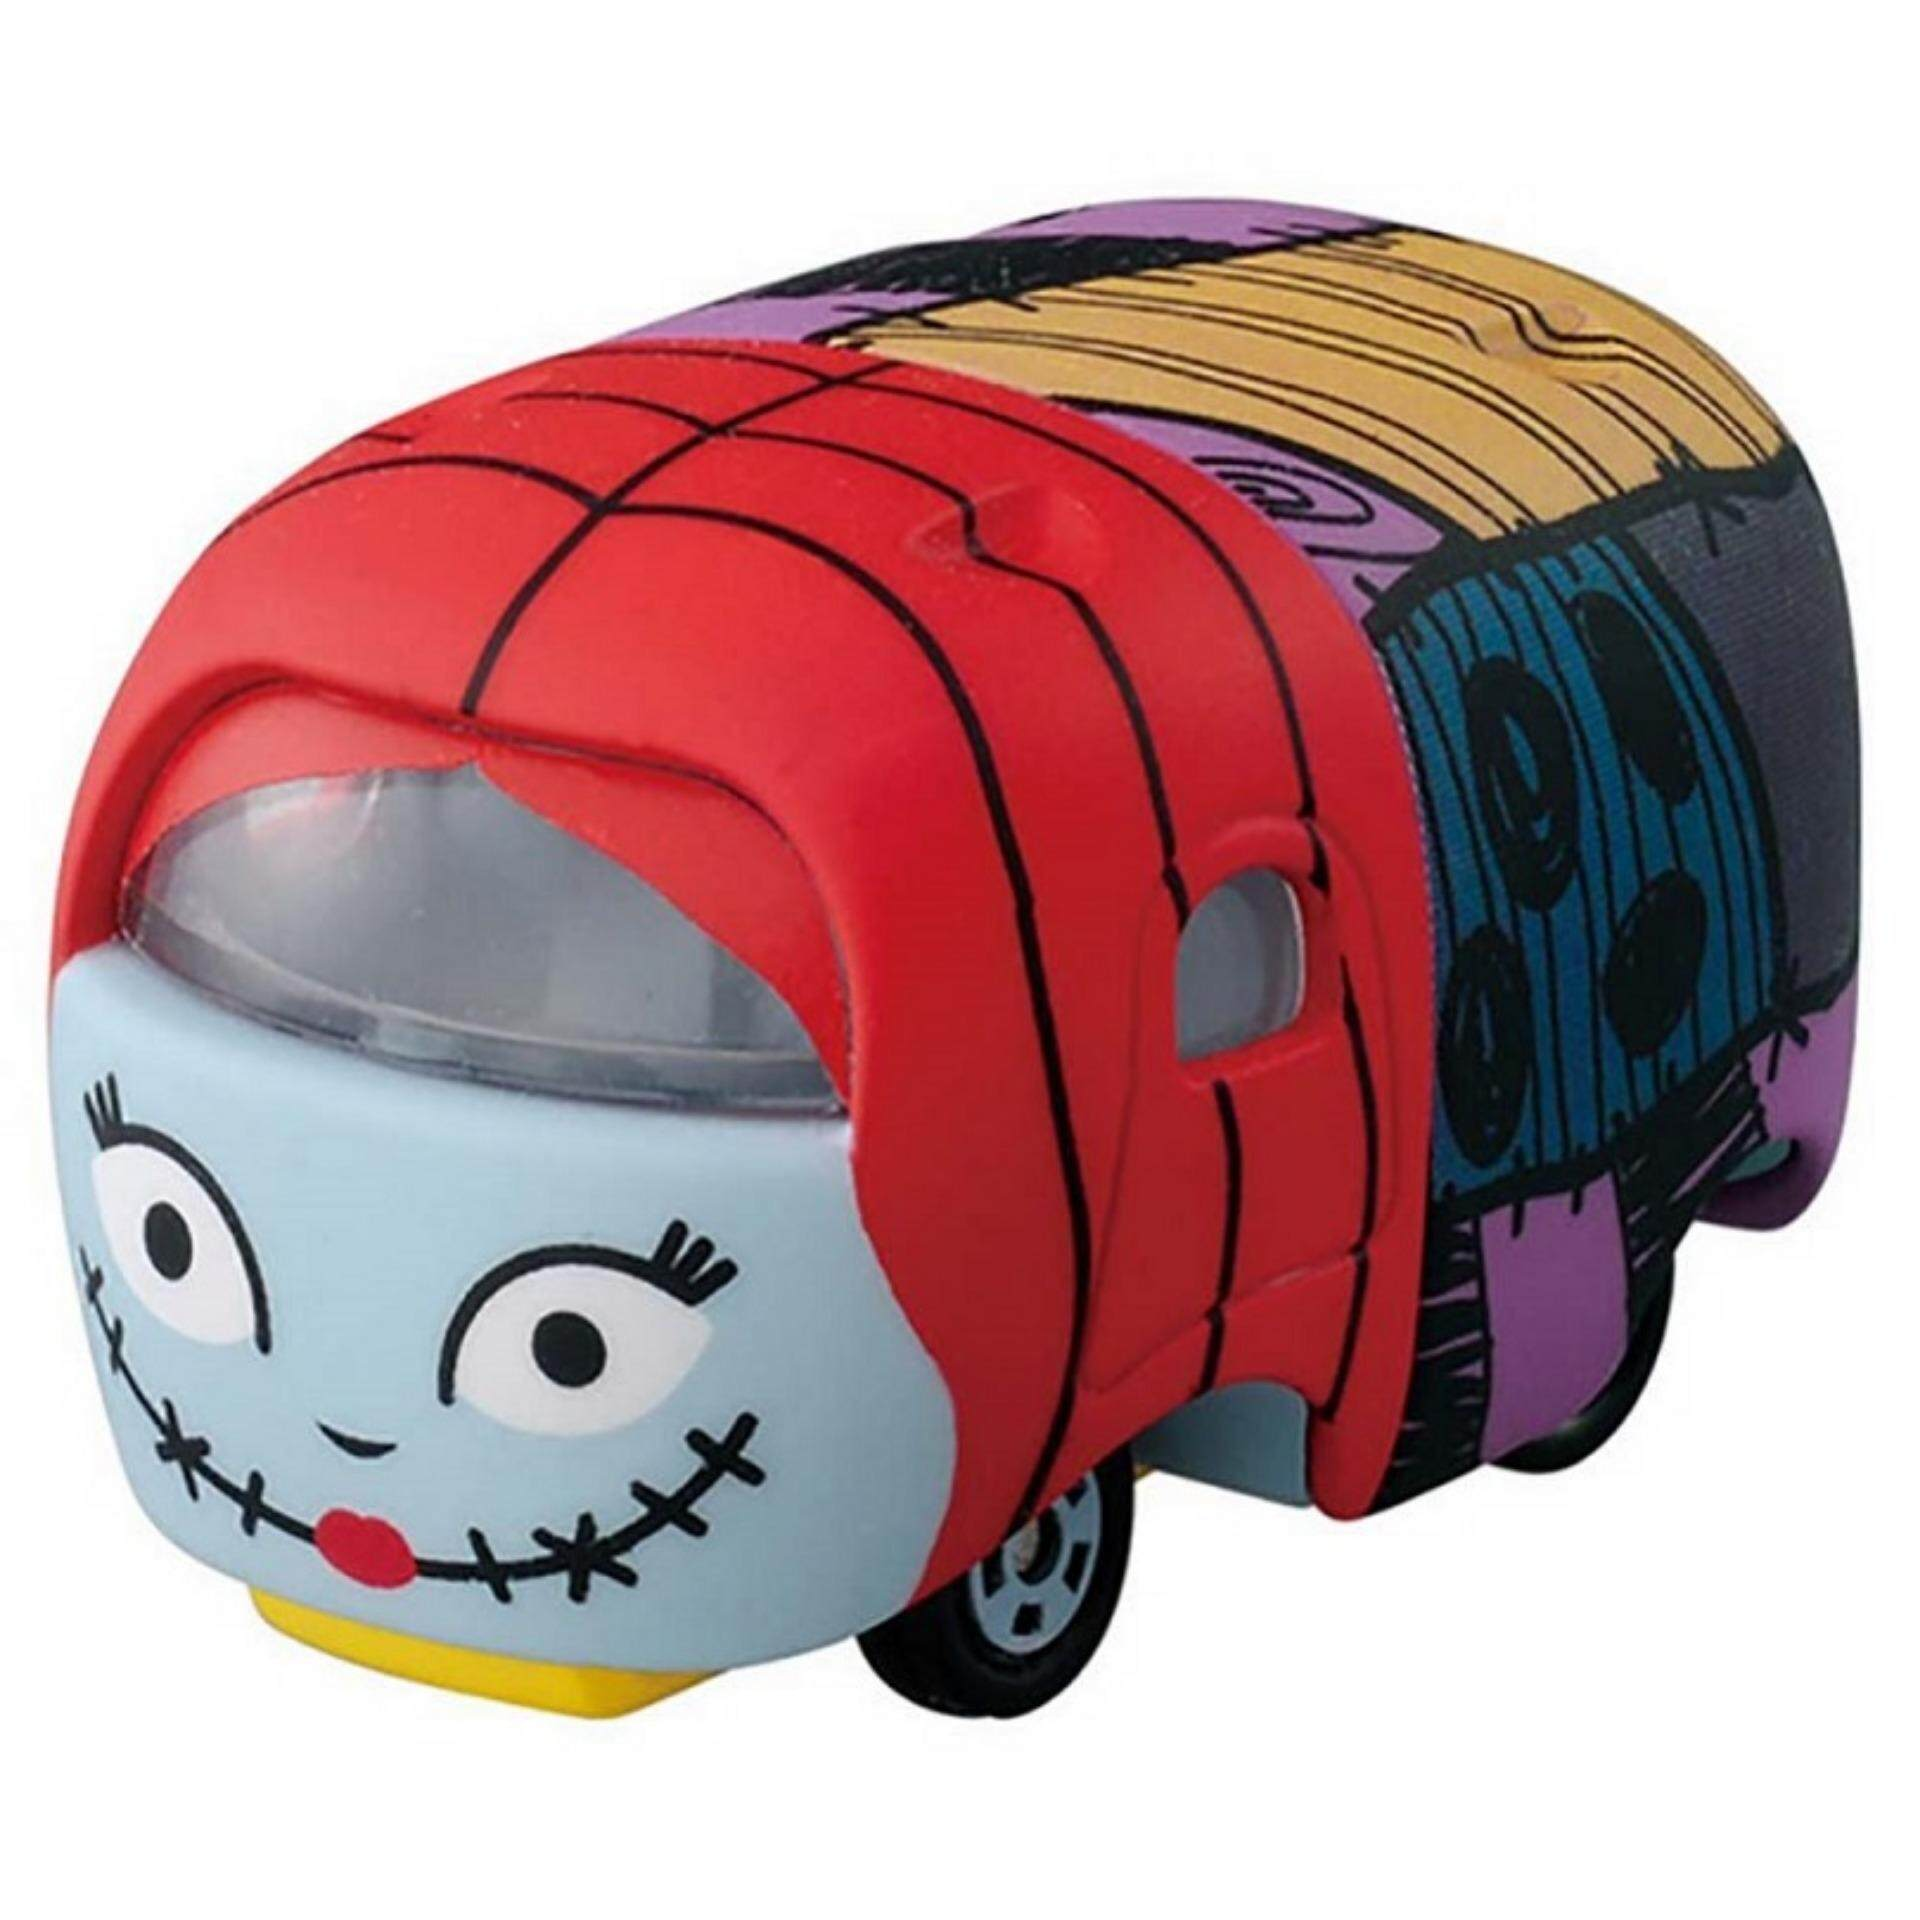 Disney Tsum Tsum Tomica Diecast Model Car - Nightmare Before Xmas-Sally Toys for boys